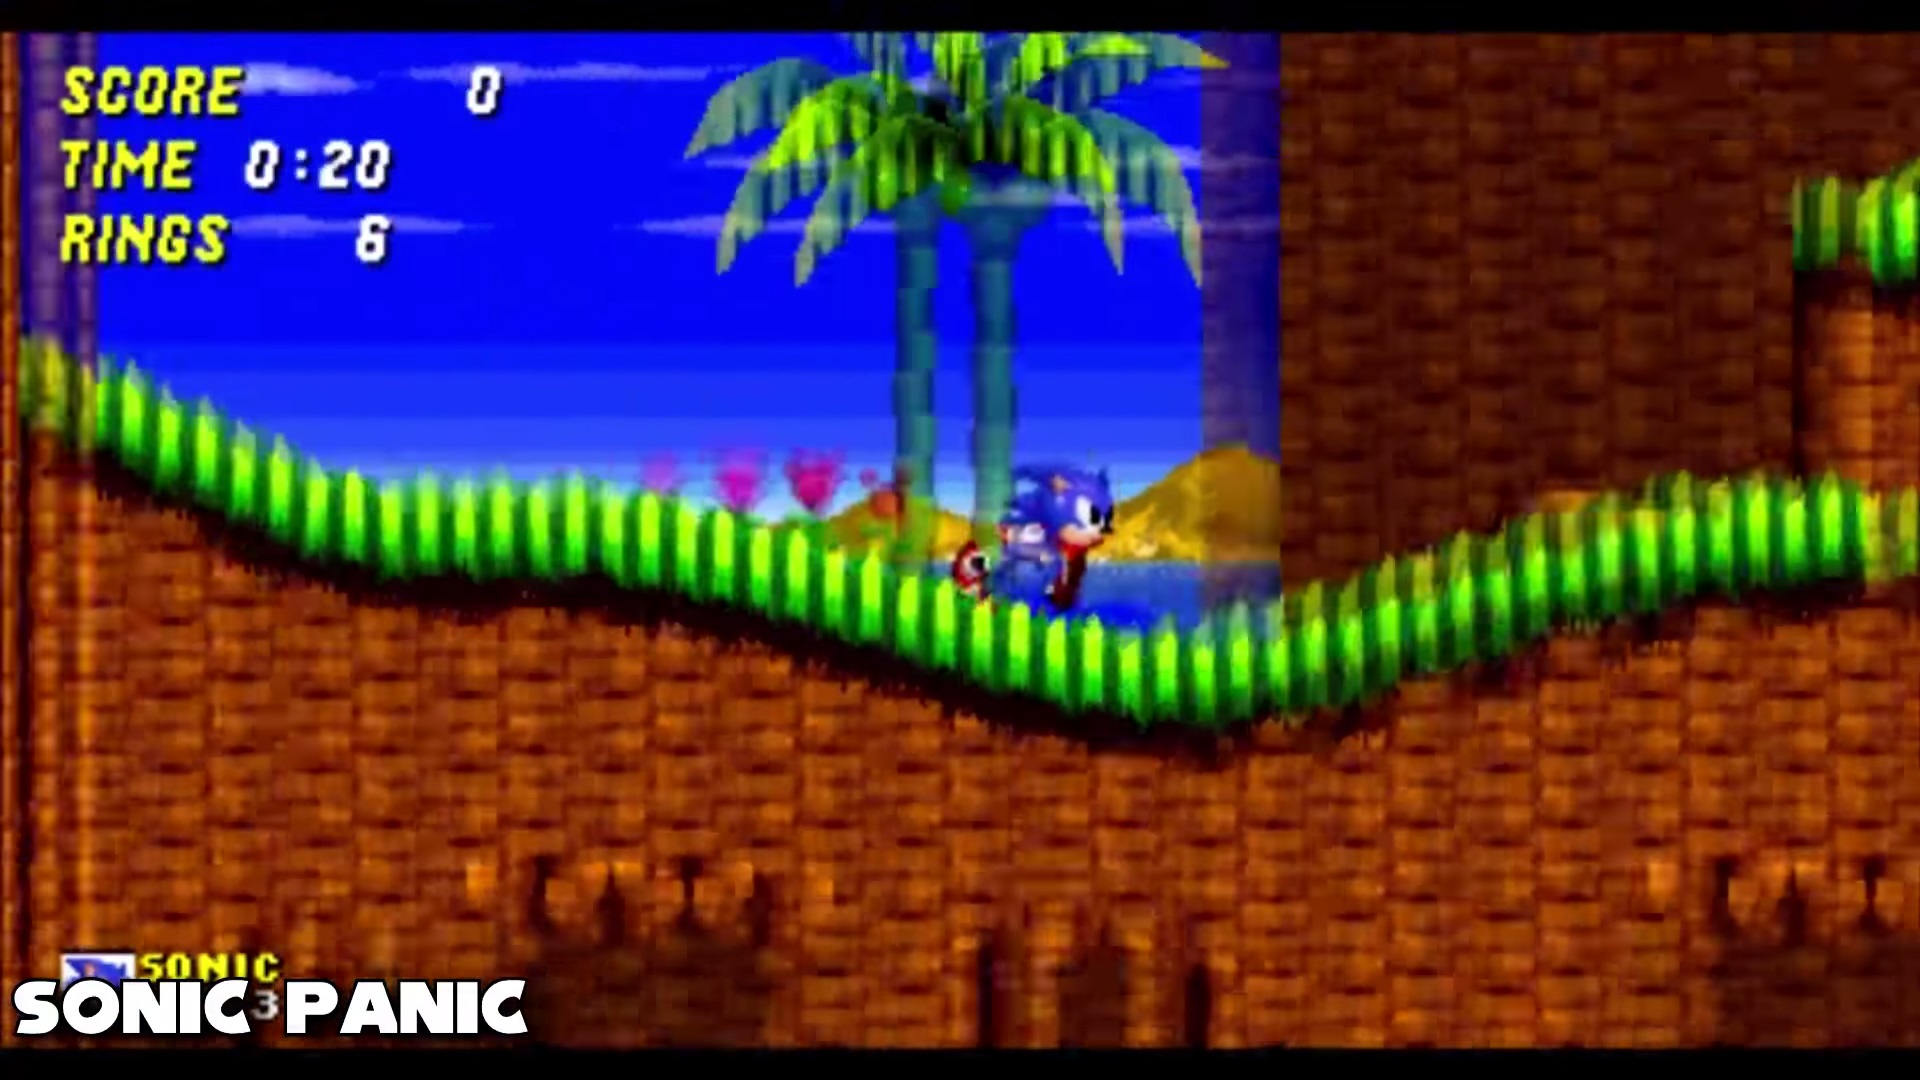 check-out-whats-on-tap-for-this-years-sonic-amateur-game-expo-social.jpg